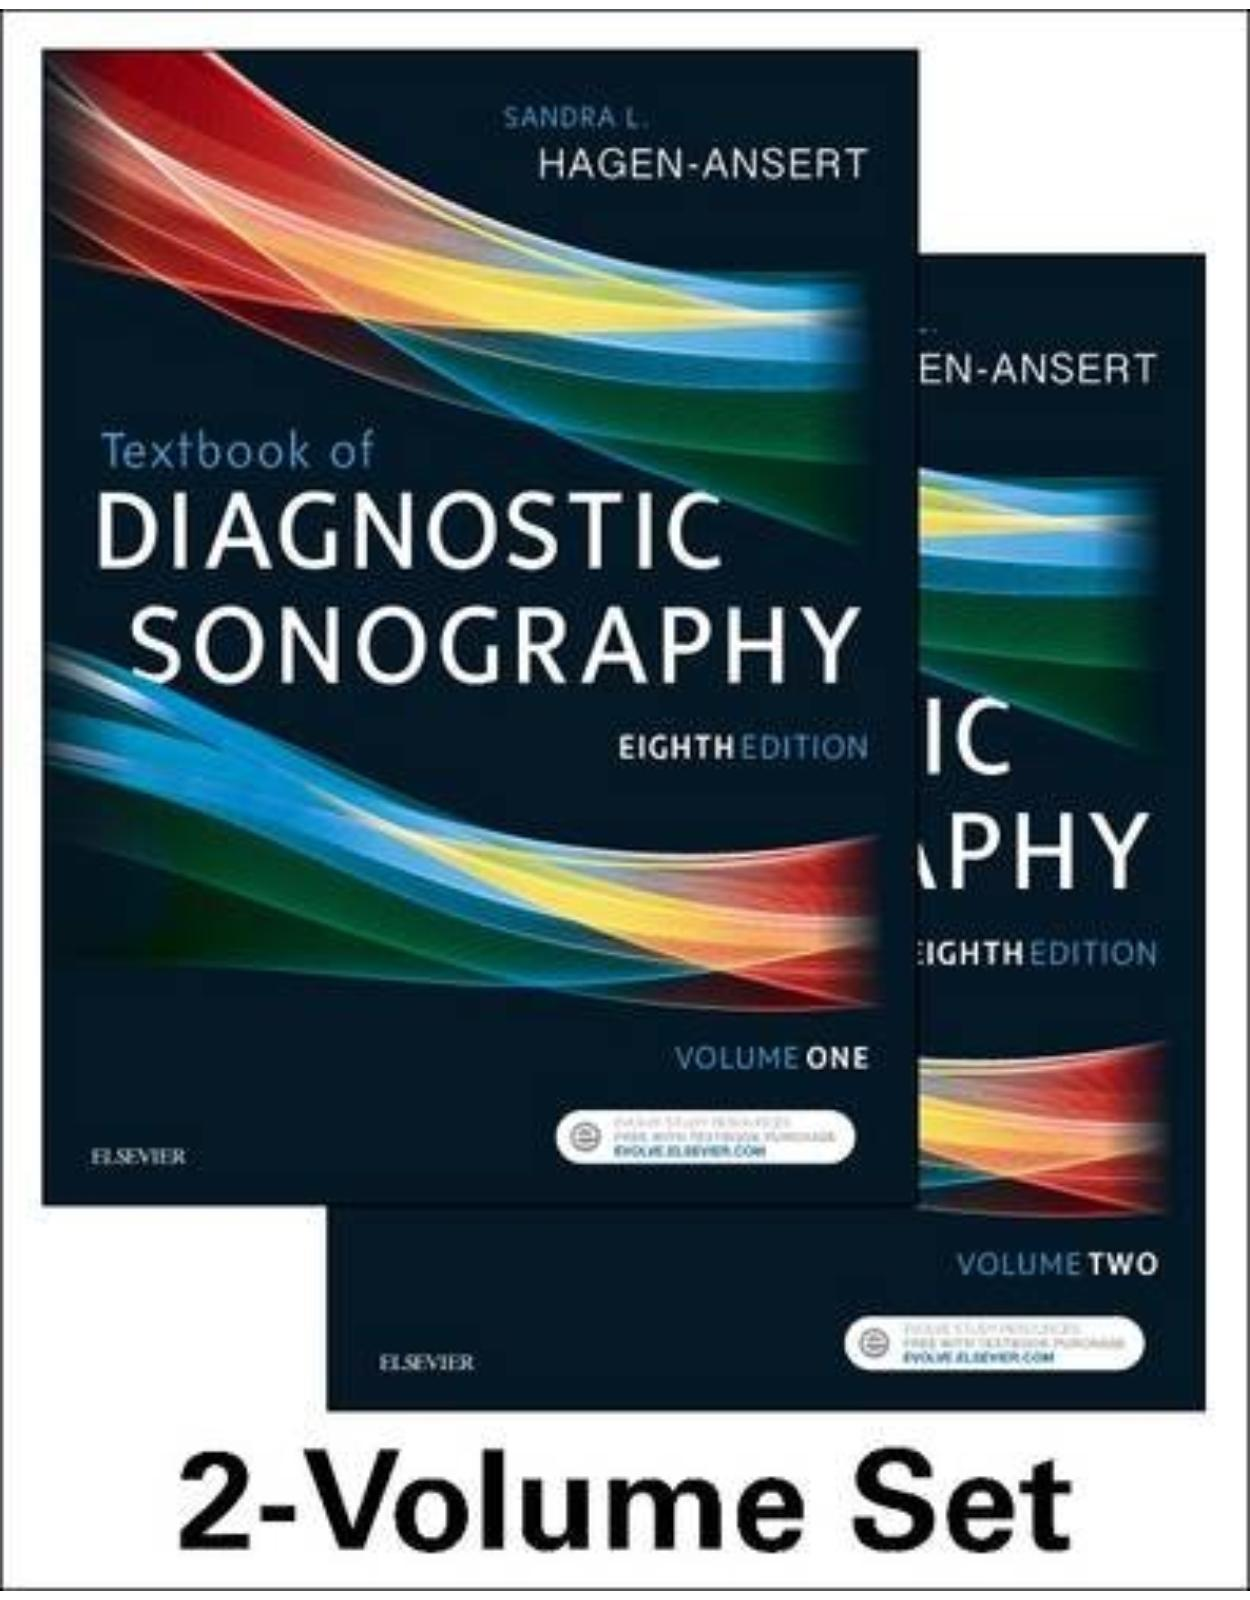 Textbook of Diagnostic Sonography, 8th Edition